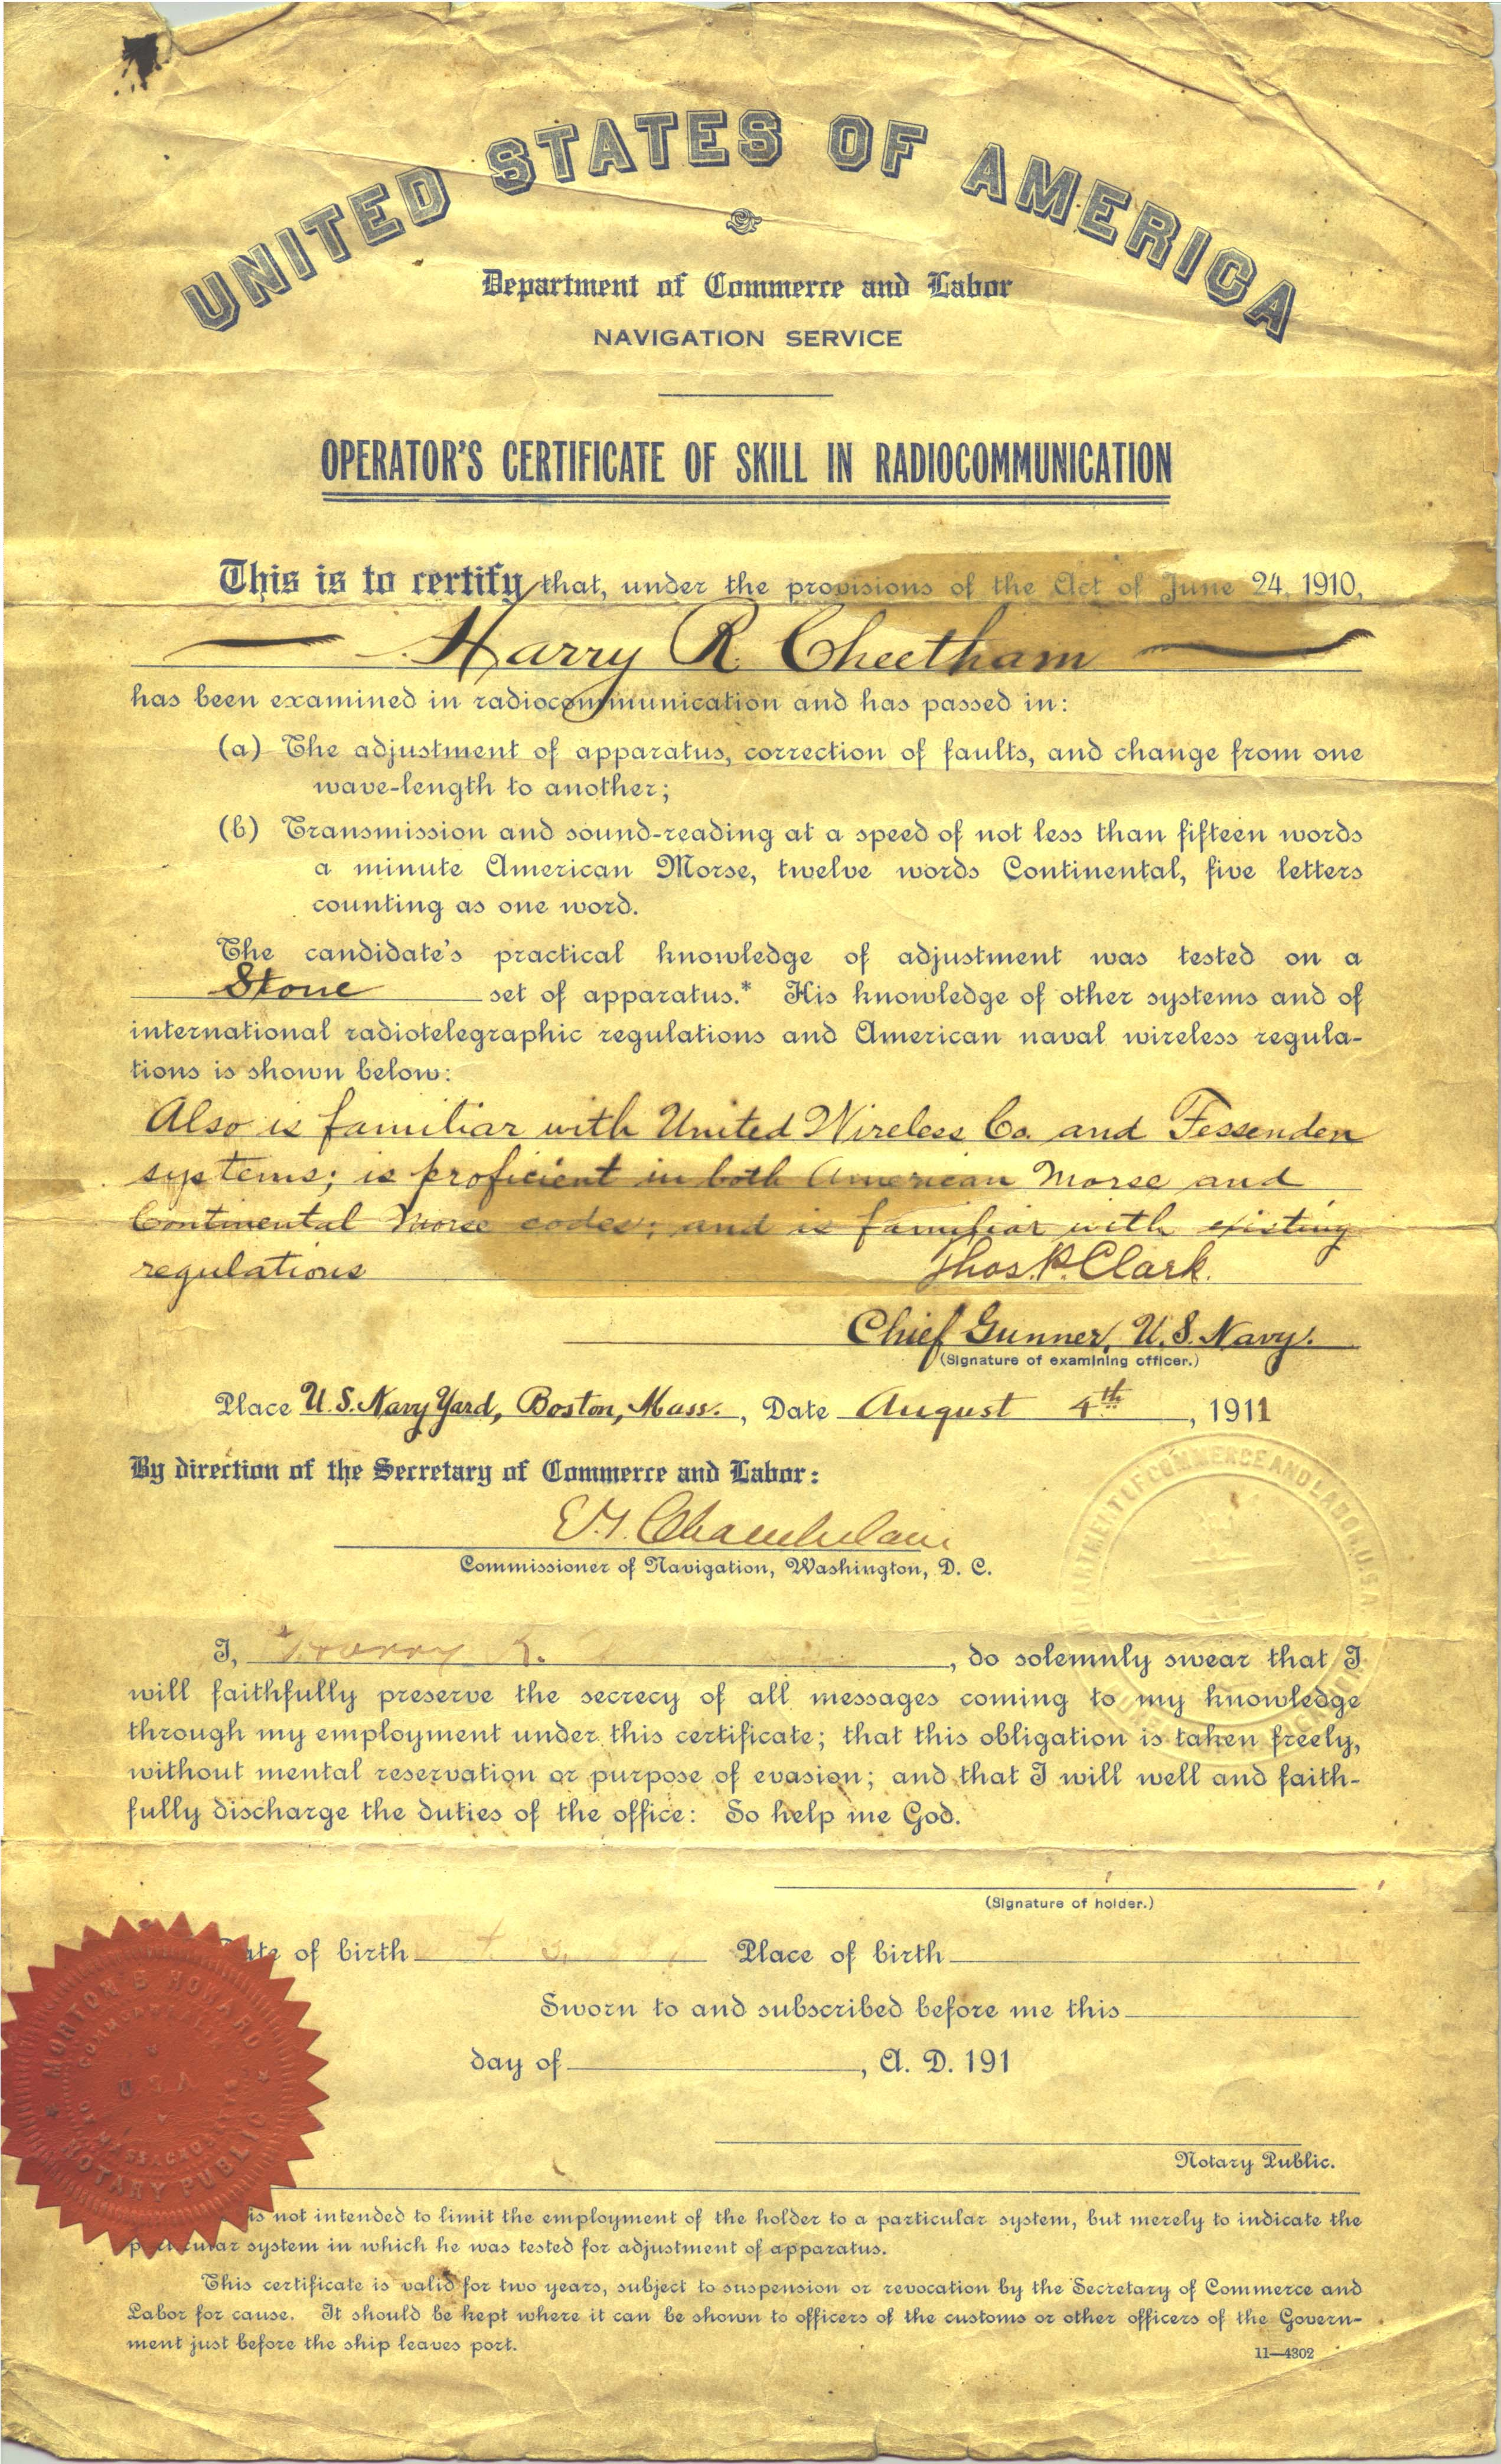 A picture of Harry Cheetham's Radio License